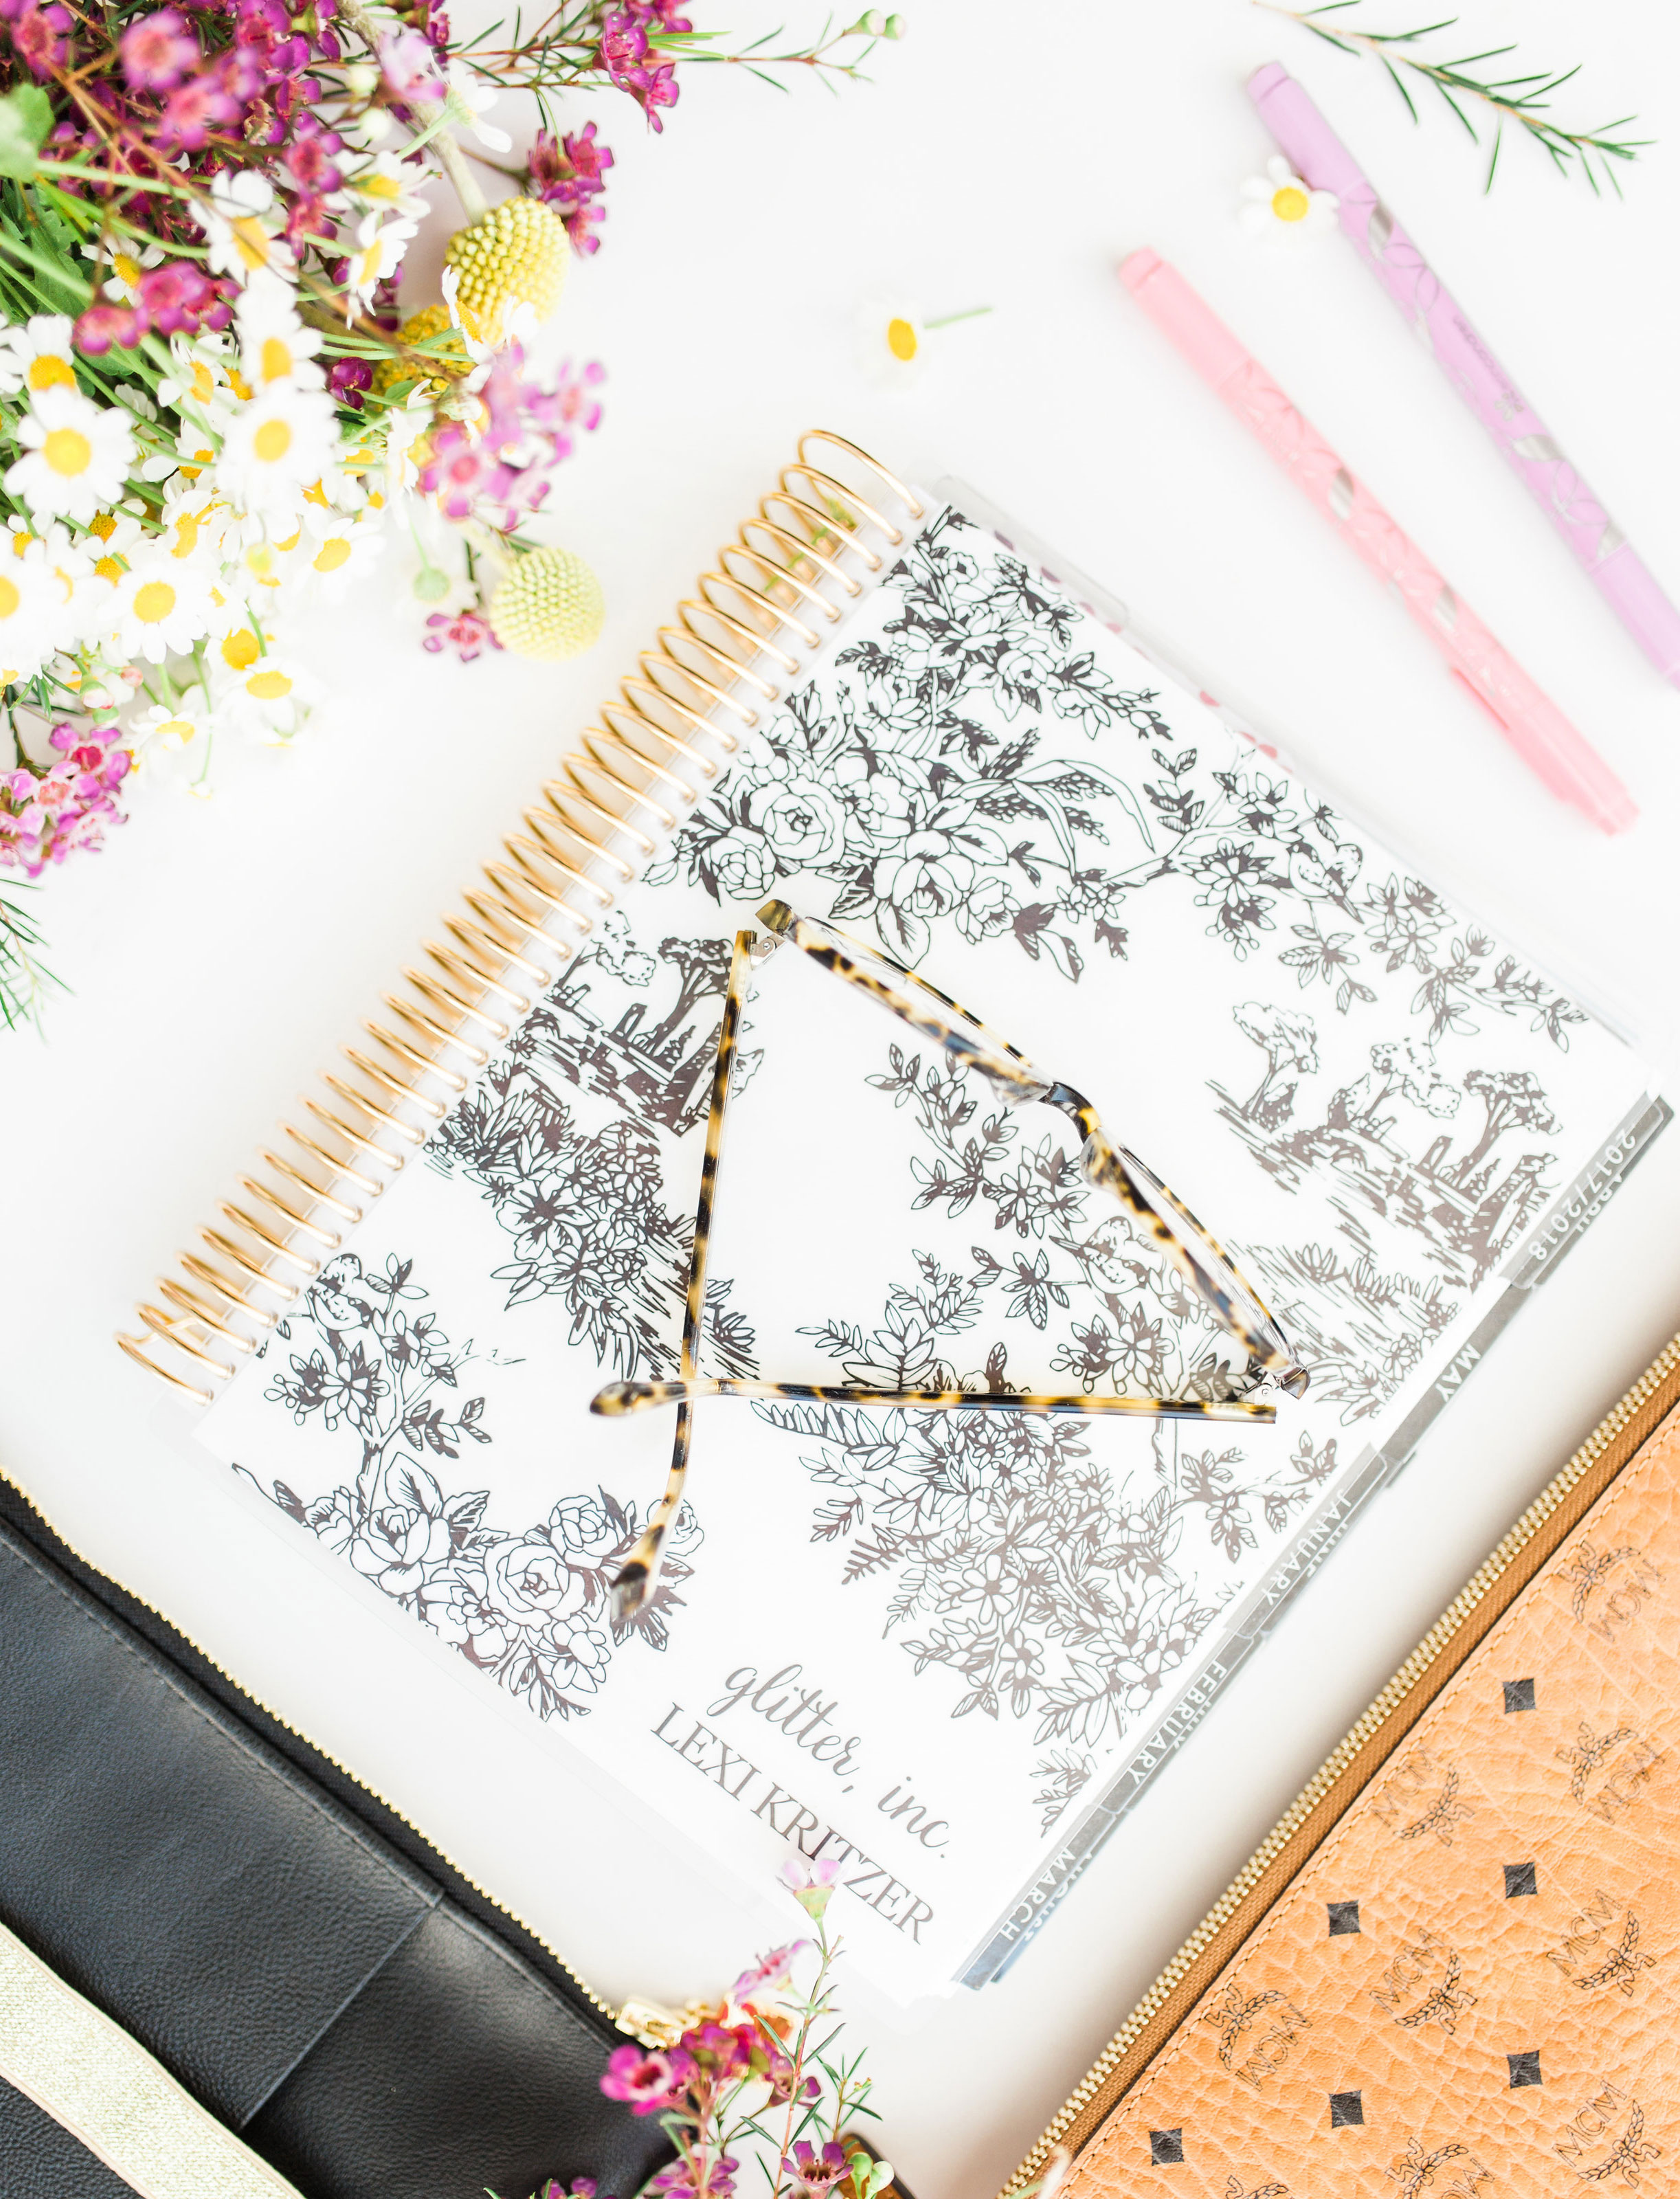 Looking for the perfect paper planner? I'm sharing how I plan and stay organized with my Erin Condren LifePlanner, plus all of the best accessories and cutest stickers. #lifeplanner #erincondren #agenda | glitterinc.com | @glitterinc